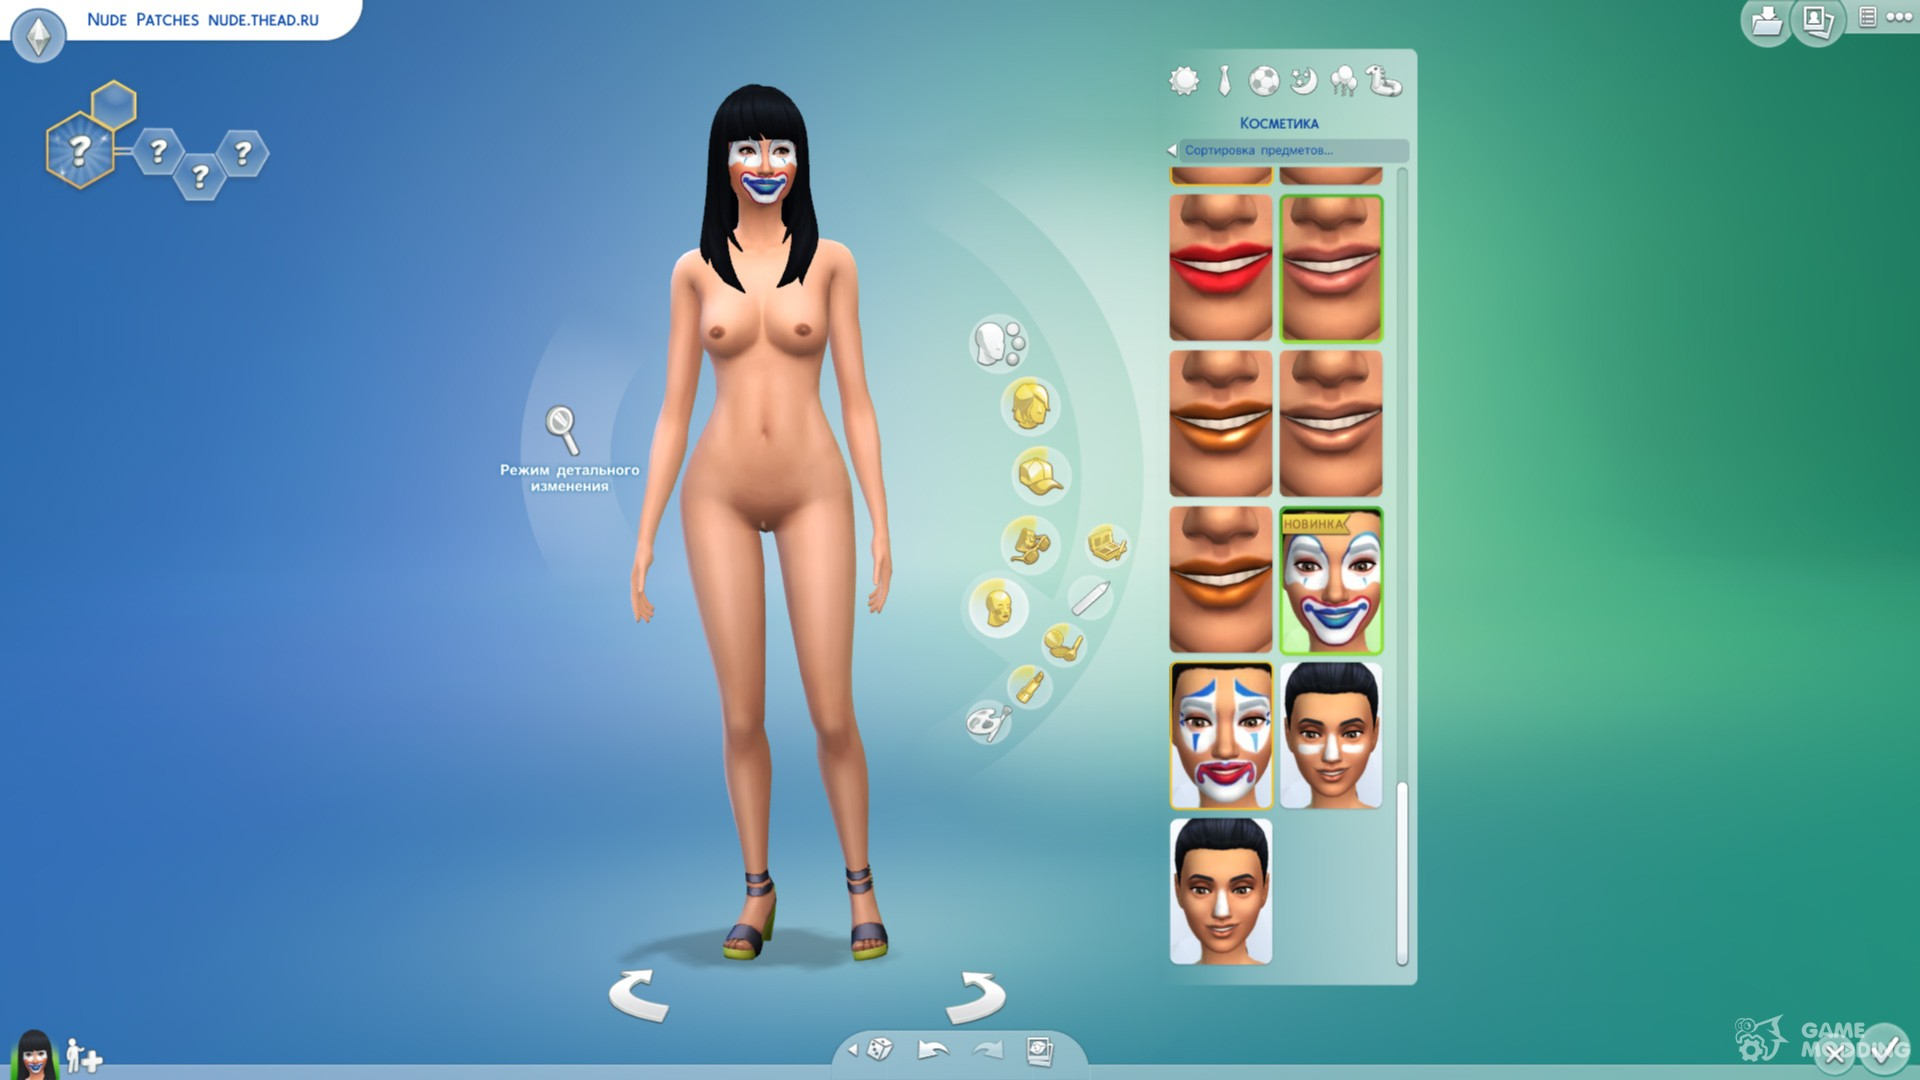 sims nude patch download